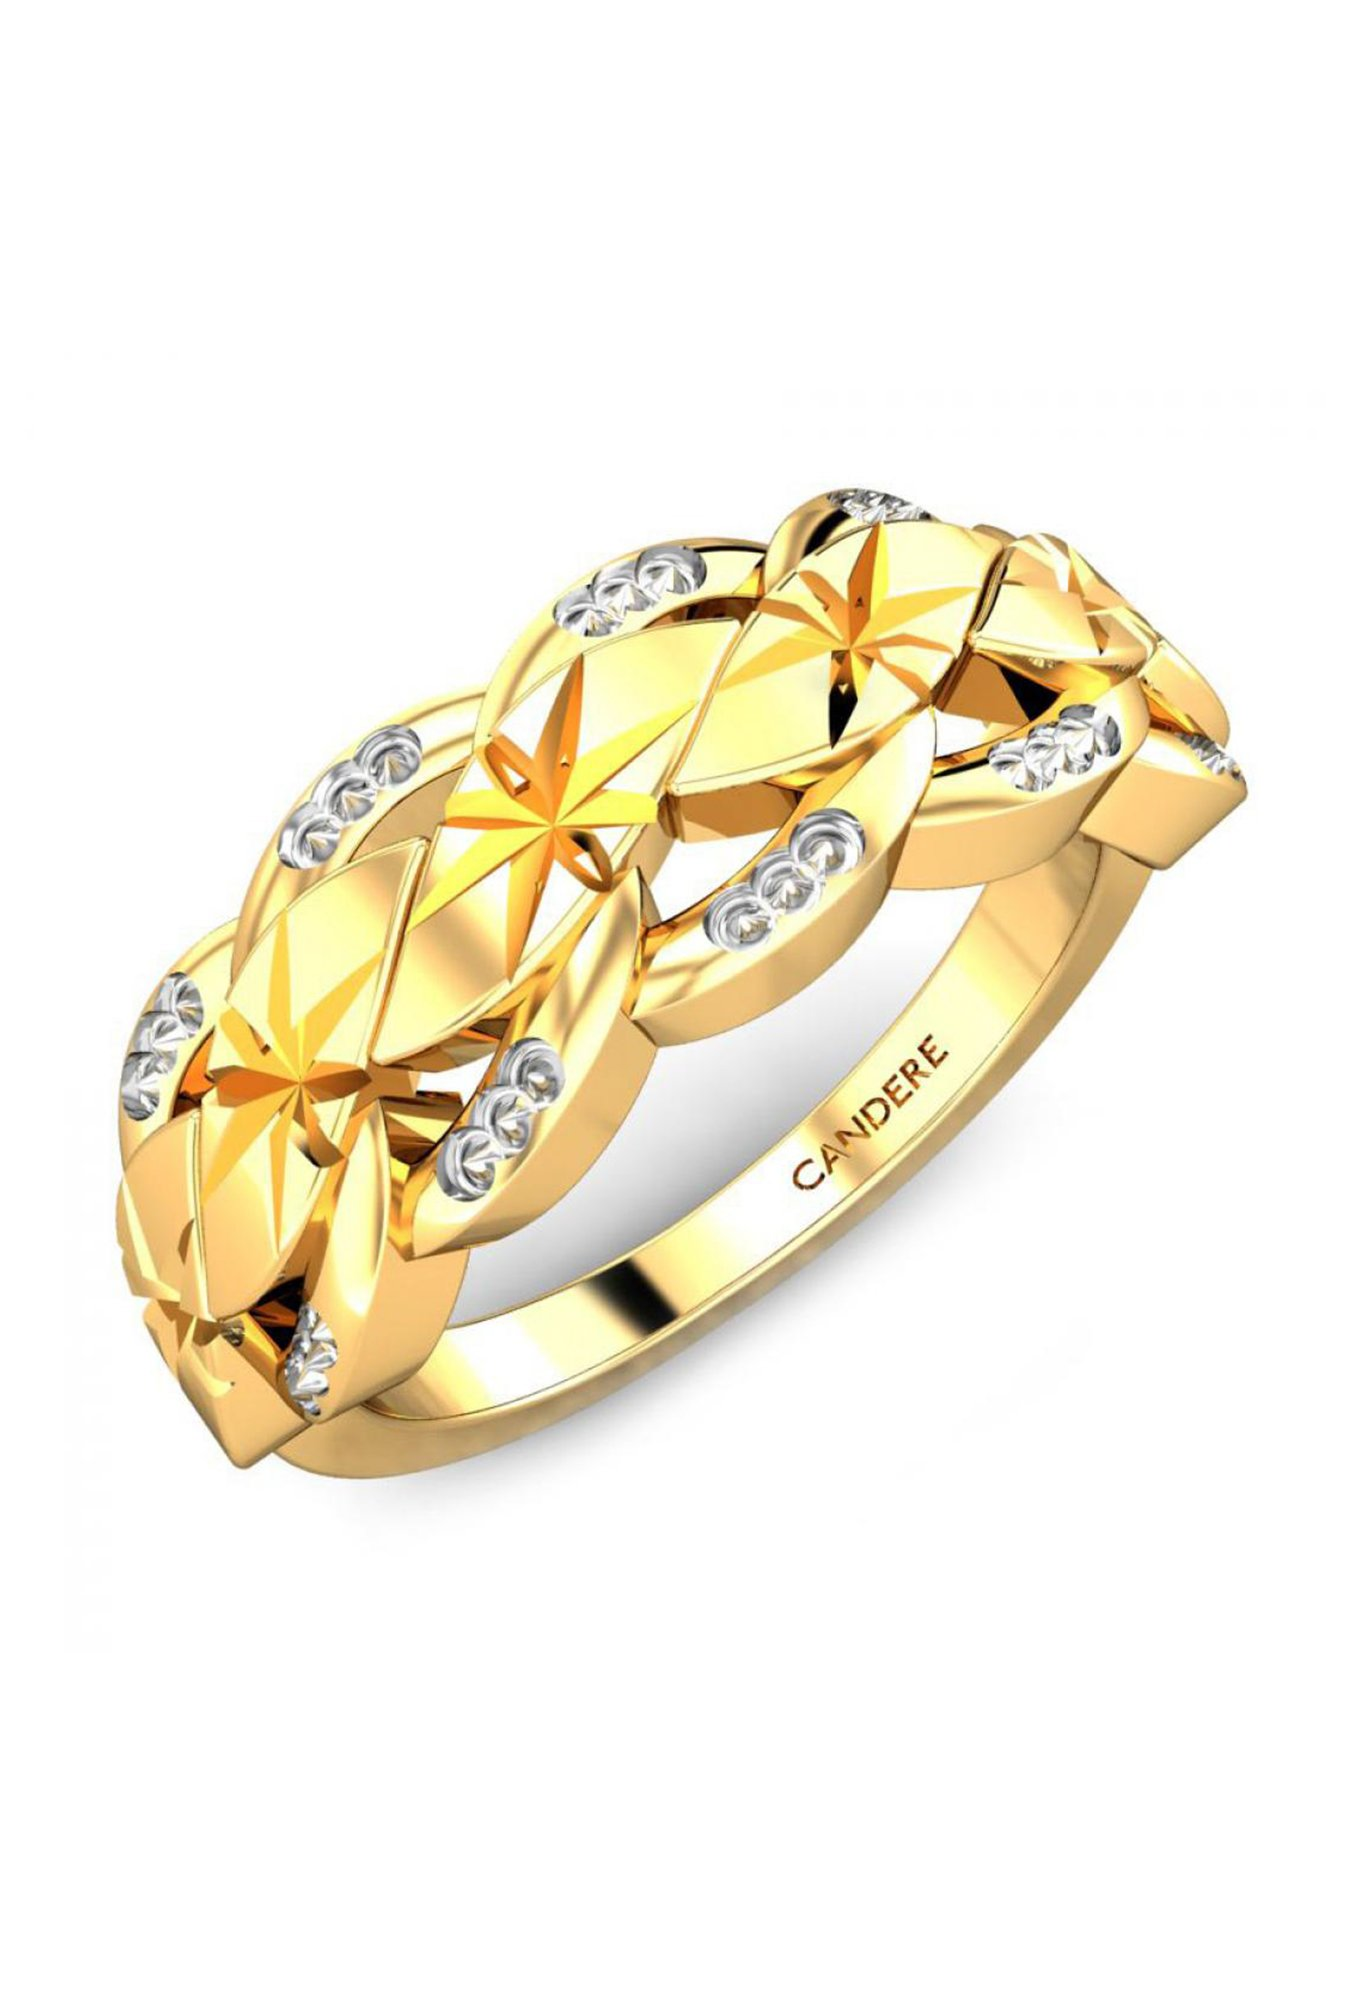 rings ring p gold buy malabar diamonds engagement price online and at best